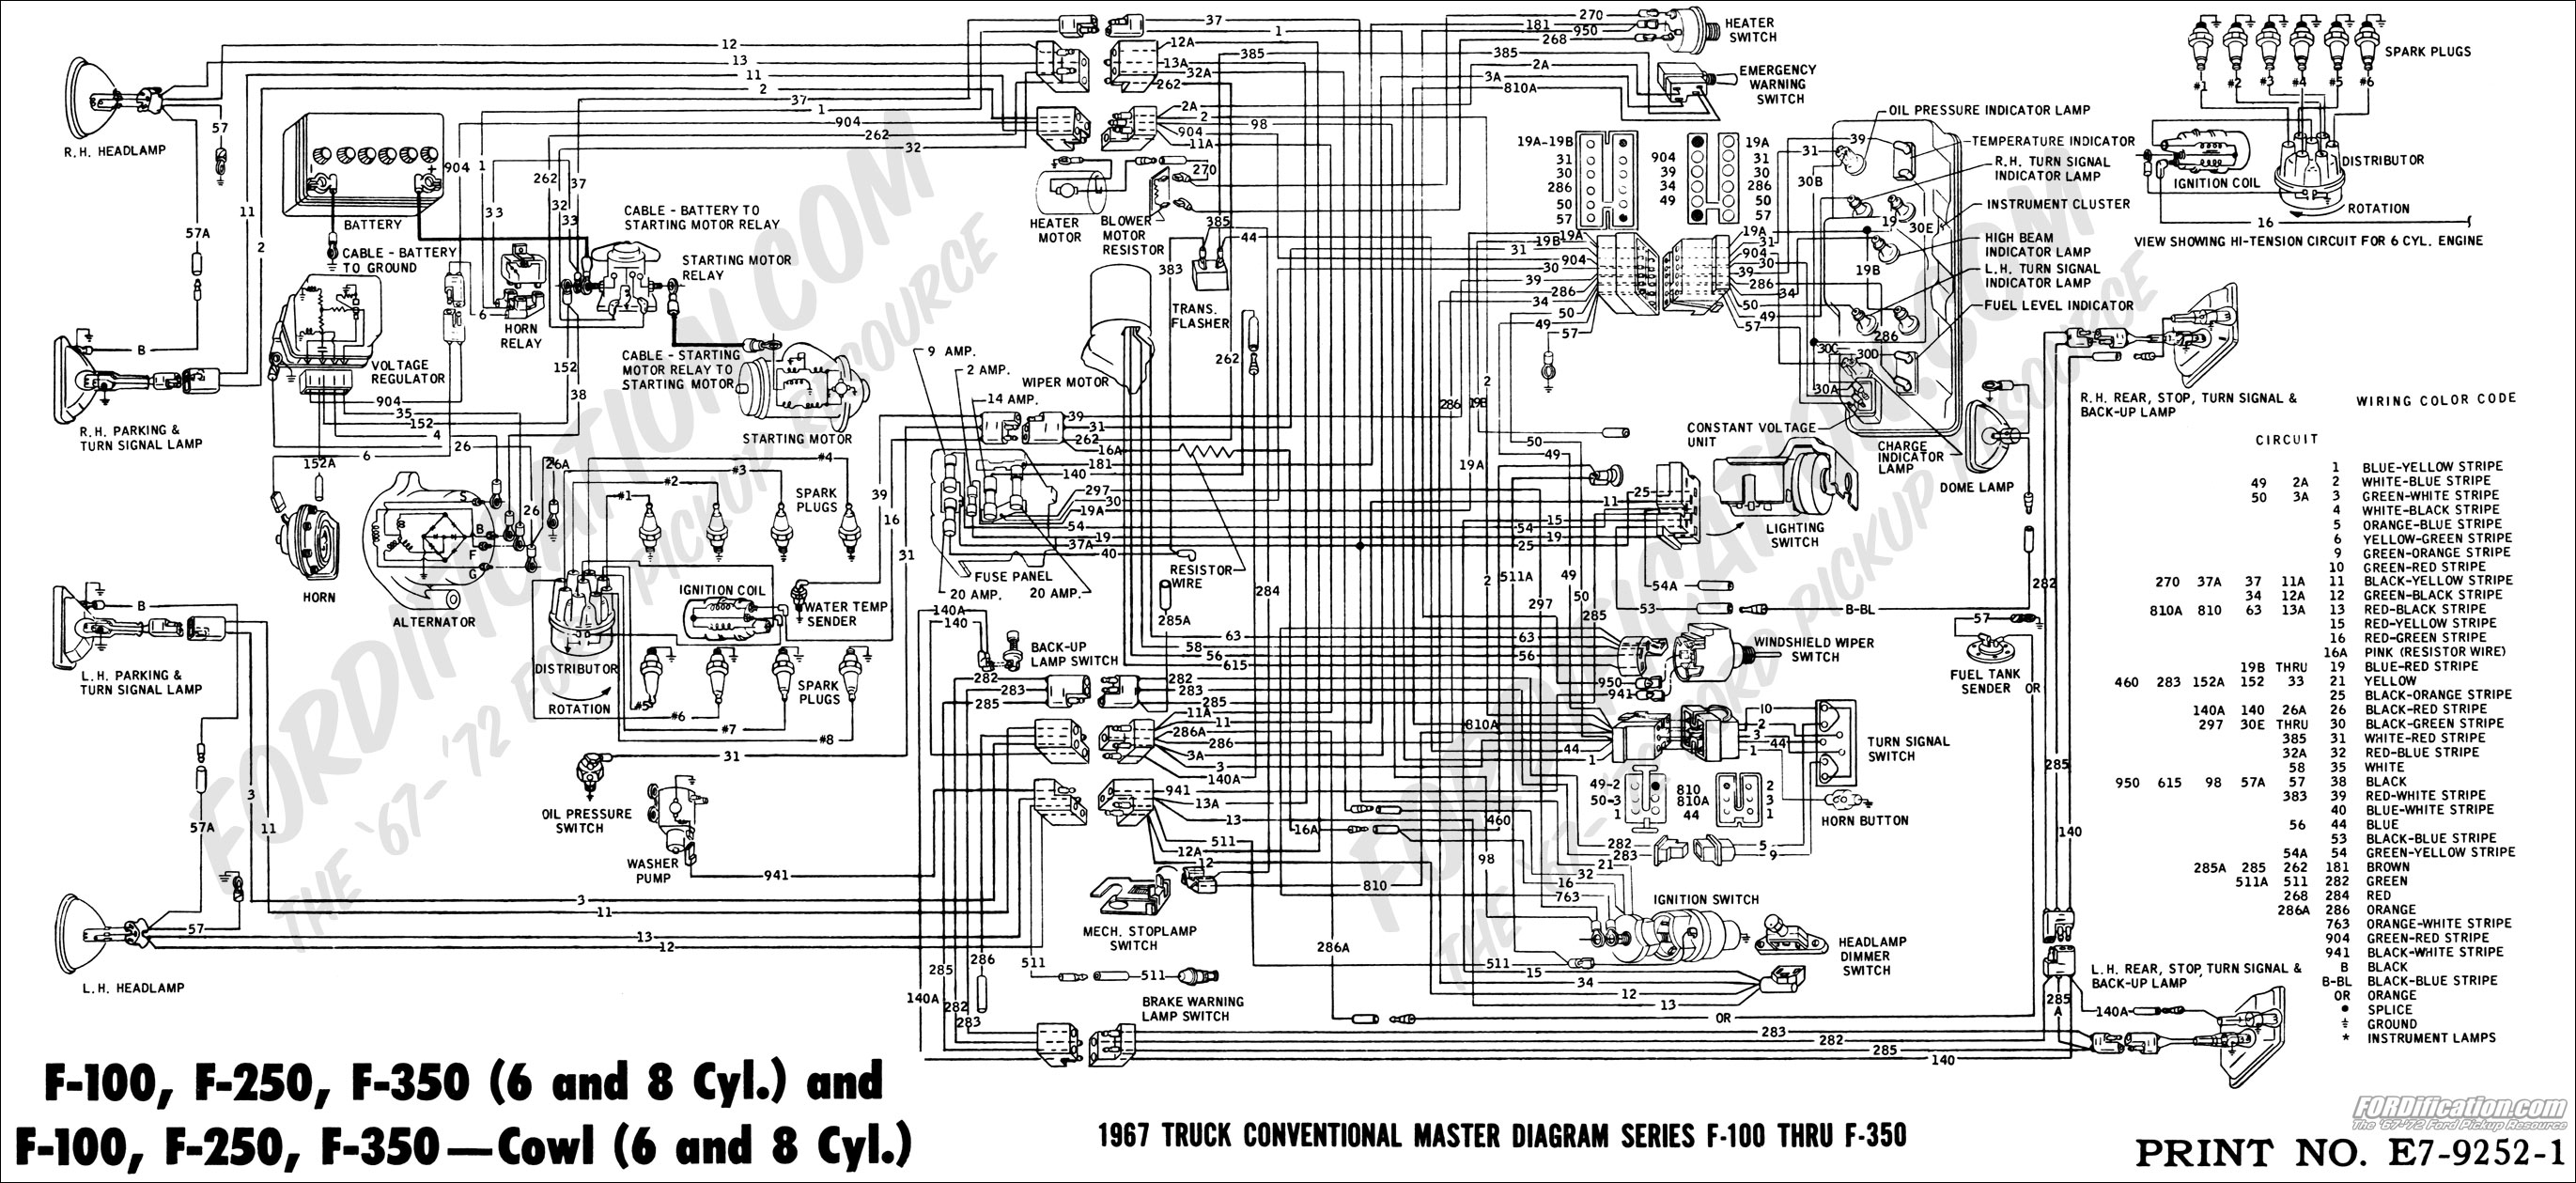 wiring diagram ford wiring diagram ford alternator wiring diagram rh hg4 co 1987 f150 fuel pump wiring diagram 1987 ford f150 wiring diagram radio